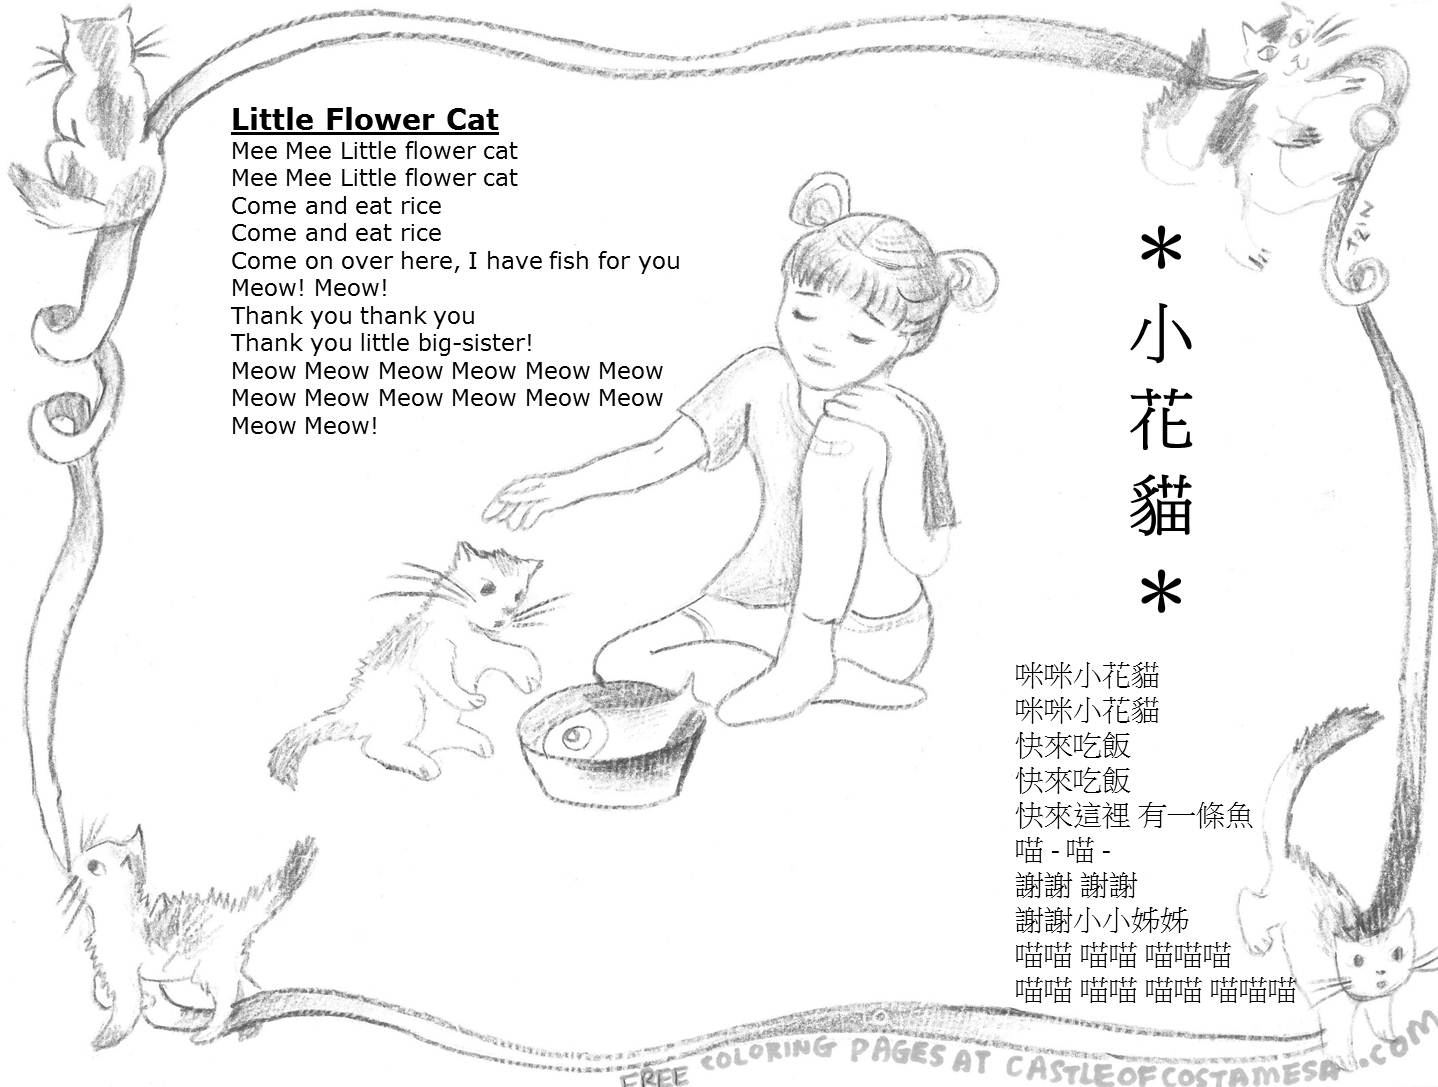 Chinese Childrens Songs Little Flower Cat Castle Of Costa Mesa